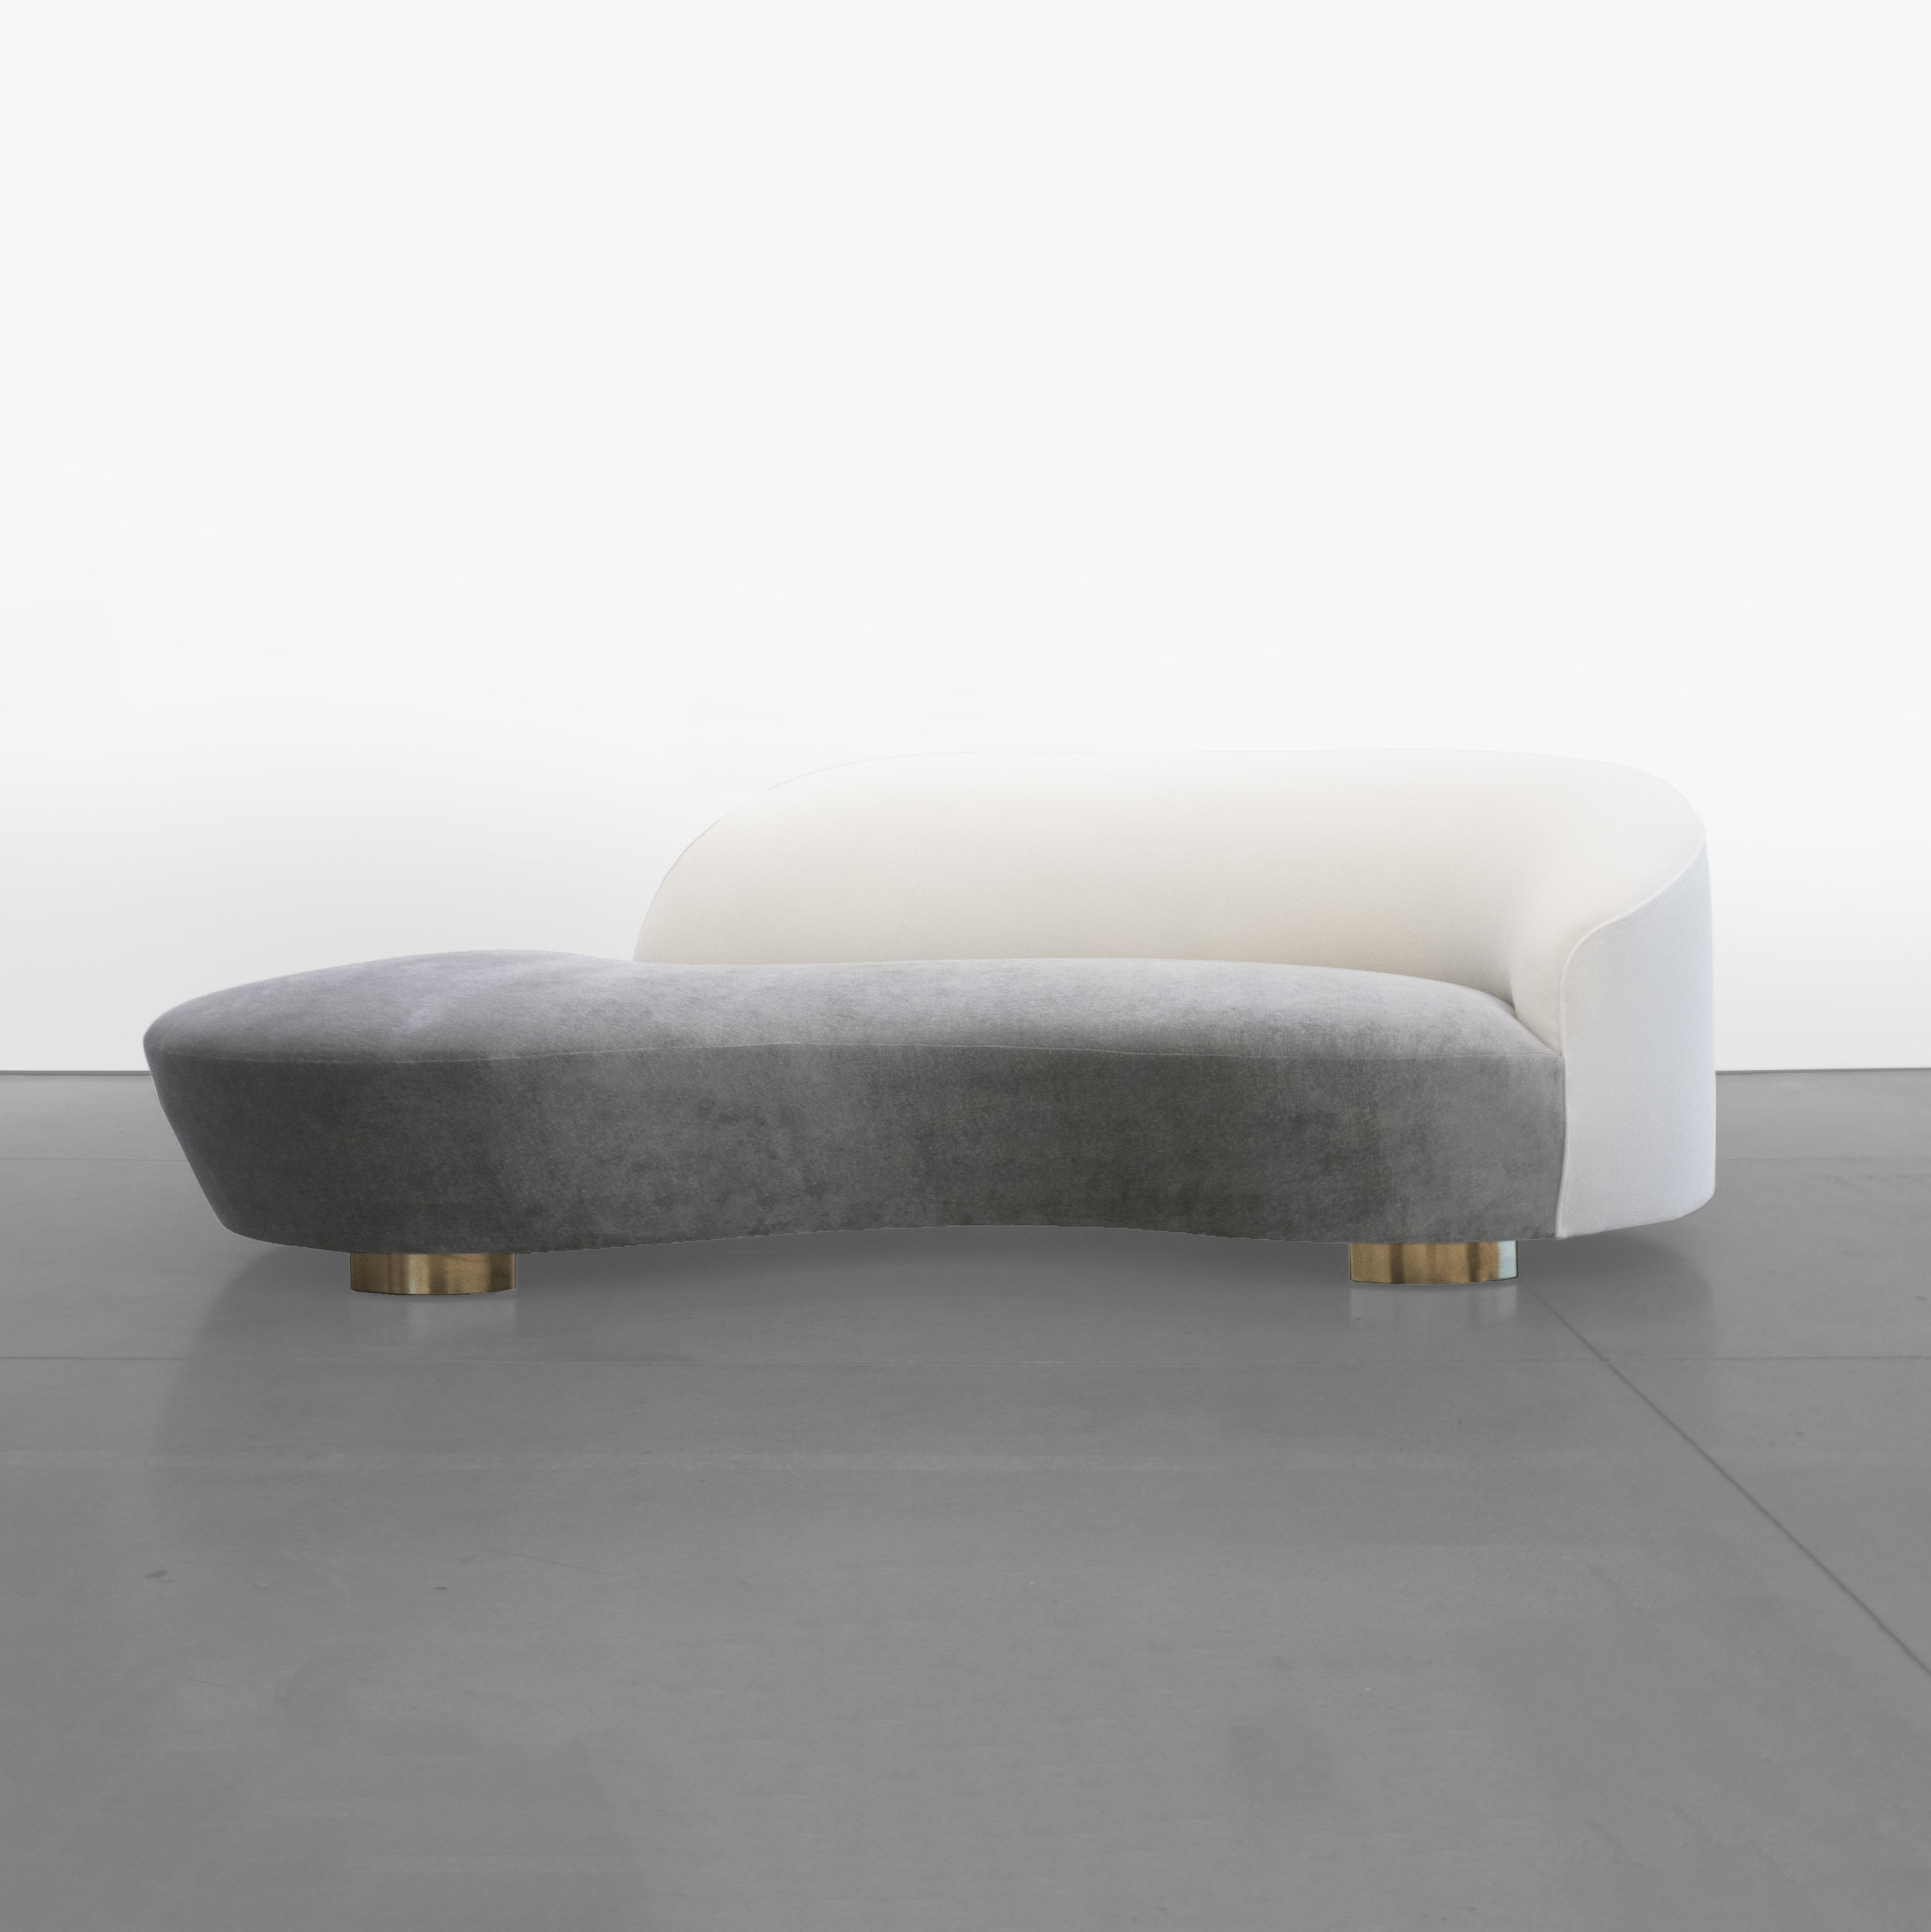 vldimir kagan 'cloud' sofa SOLD